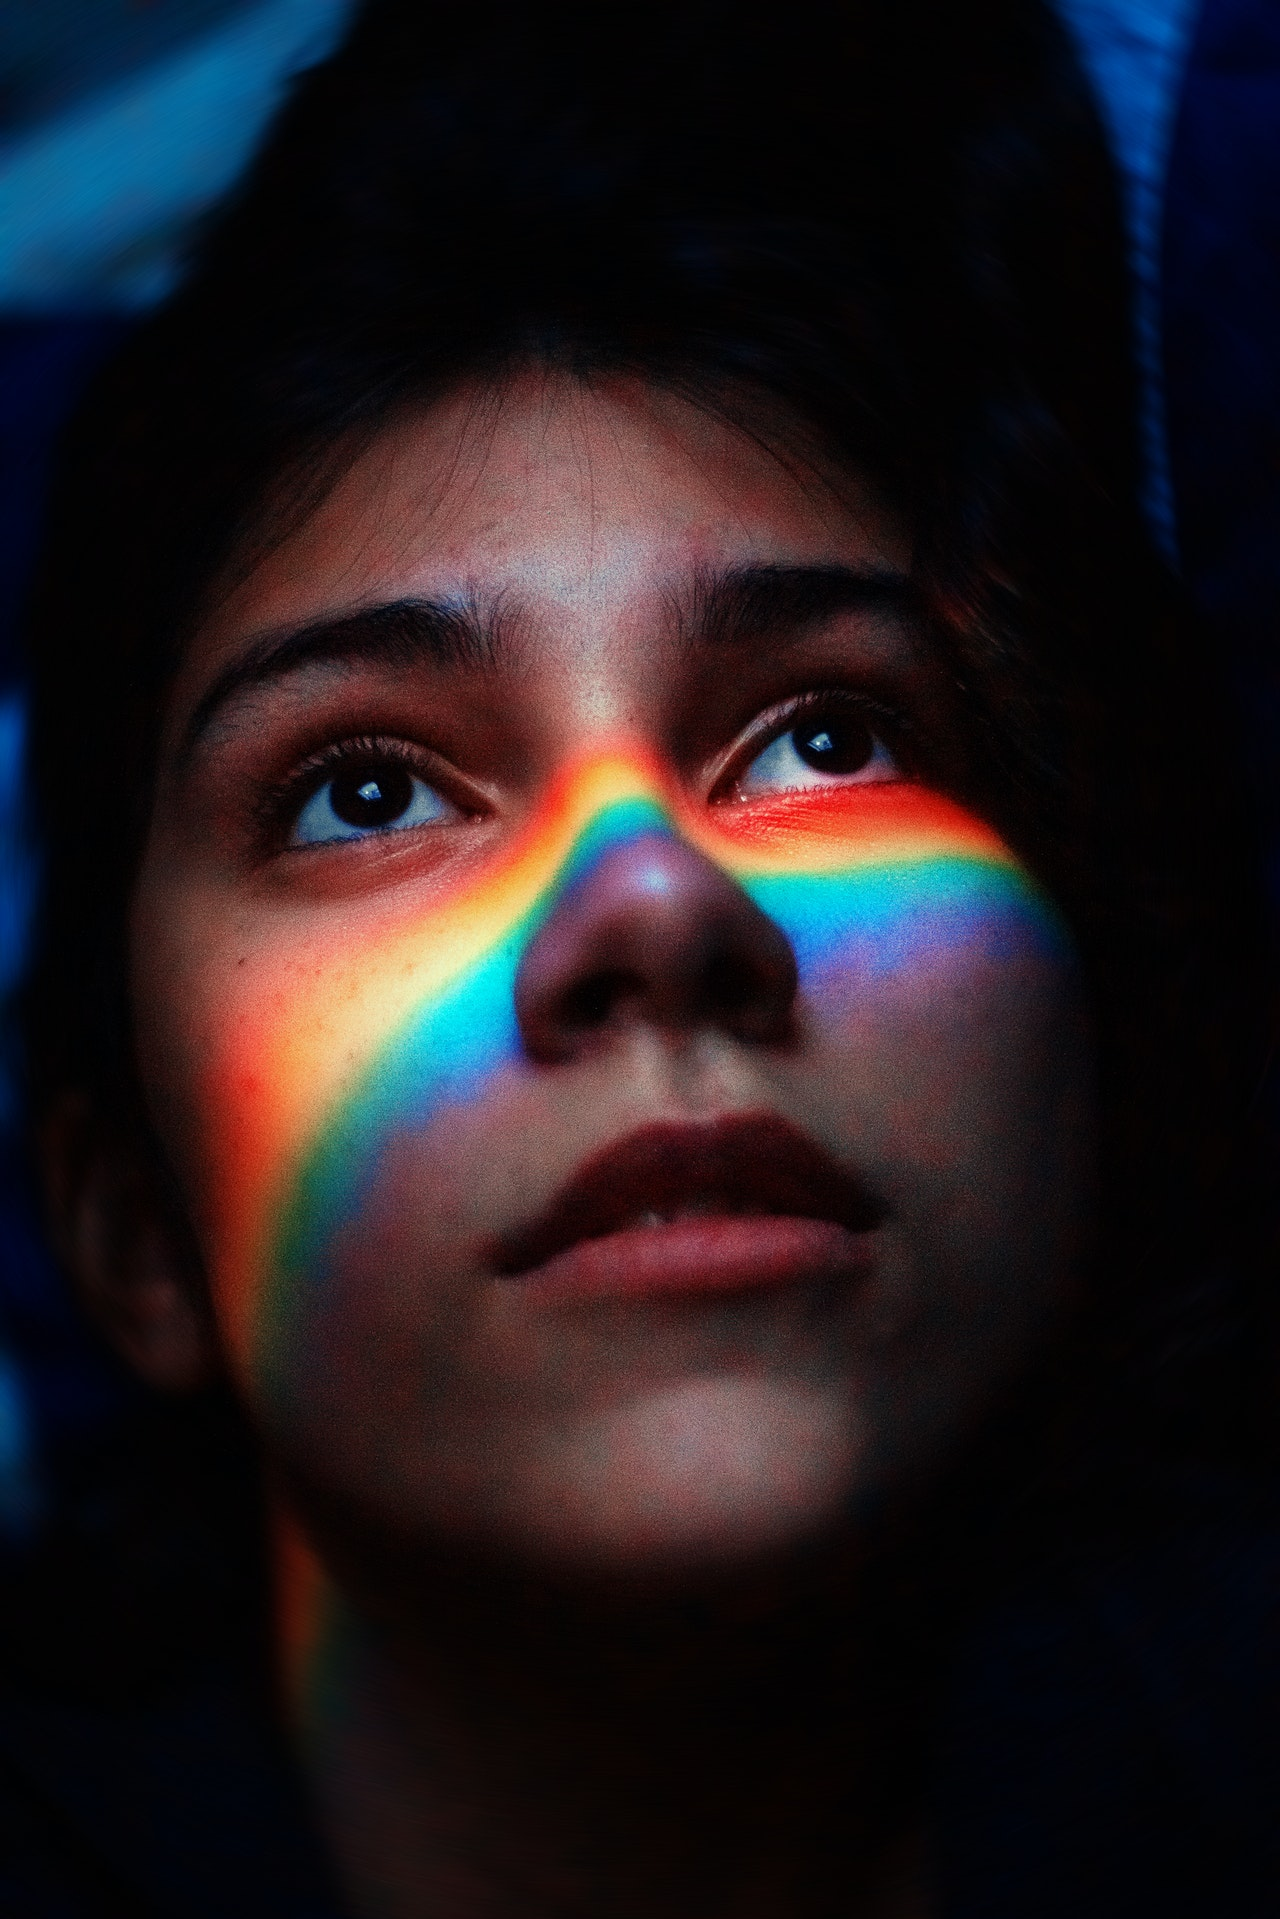 a close up photo of a lesbian girl face in shadow of LGBT rainbow color